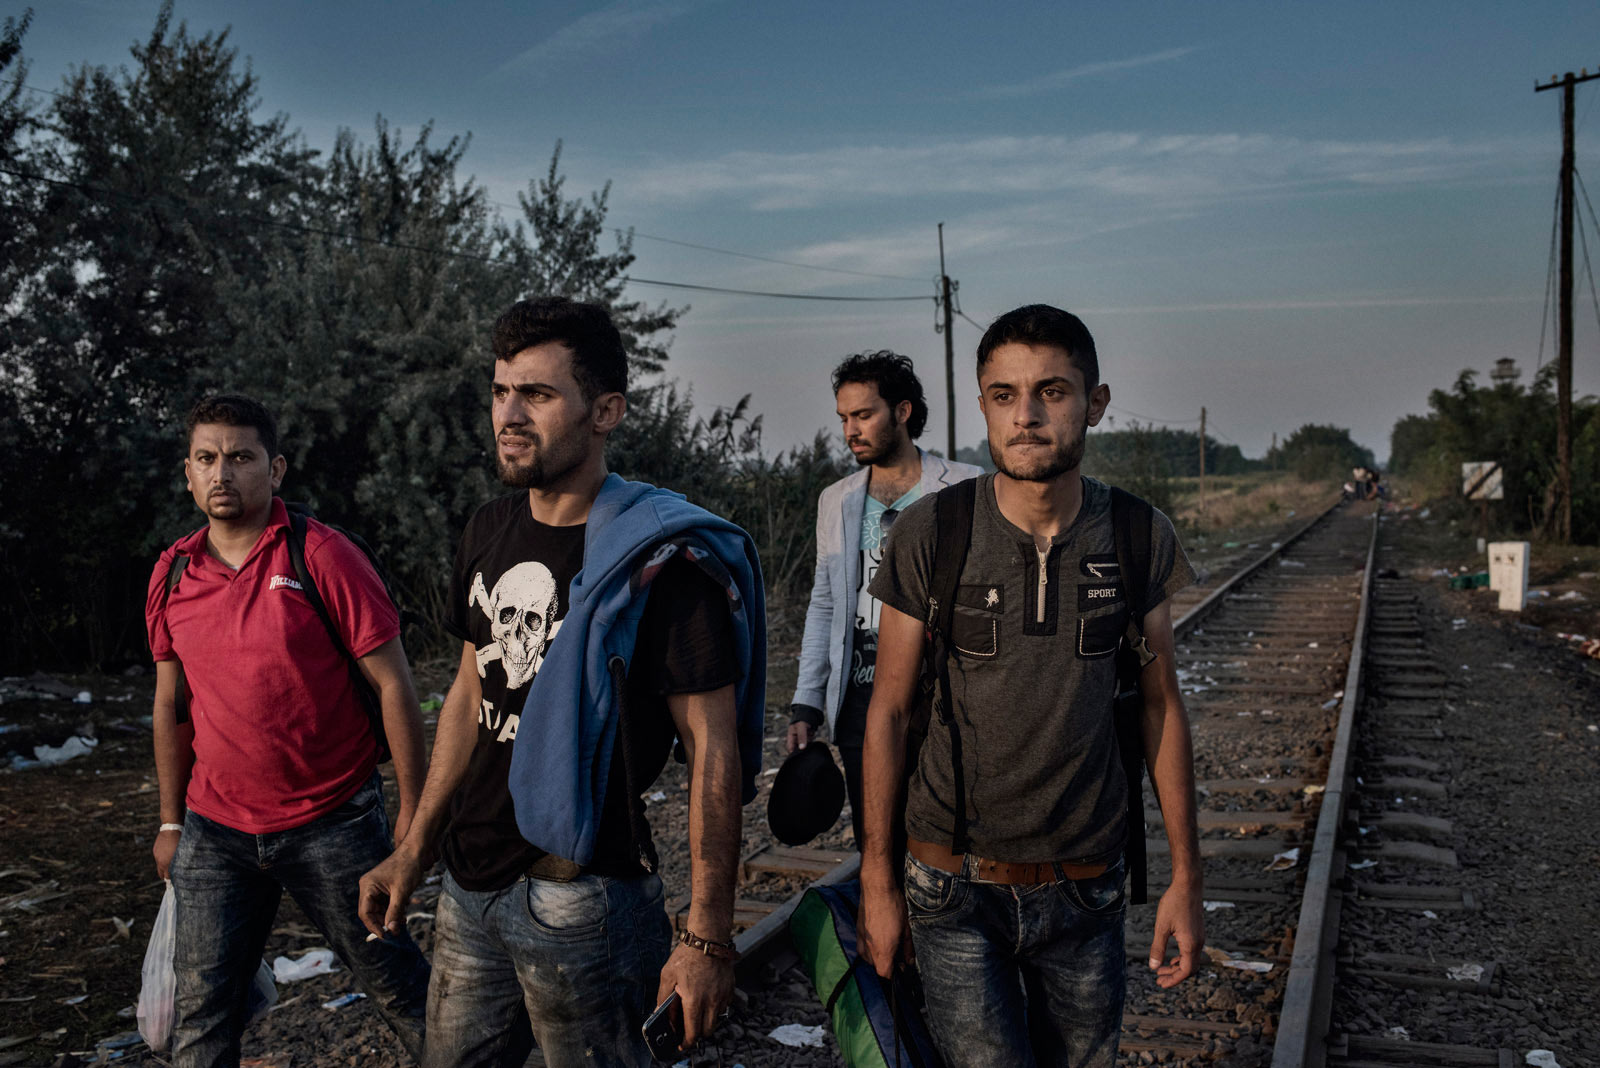 A group of migrants from Syria prepares to cross into the European Union through the border between Serbia and Hungary. Roszke, Hungary, Aug. 29, 2015.